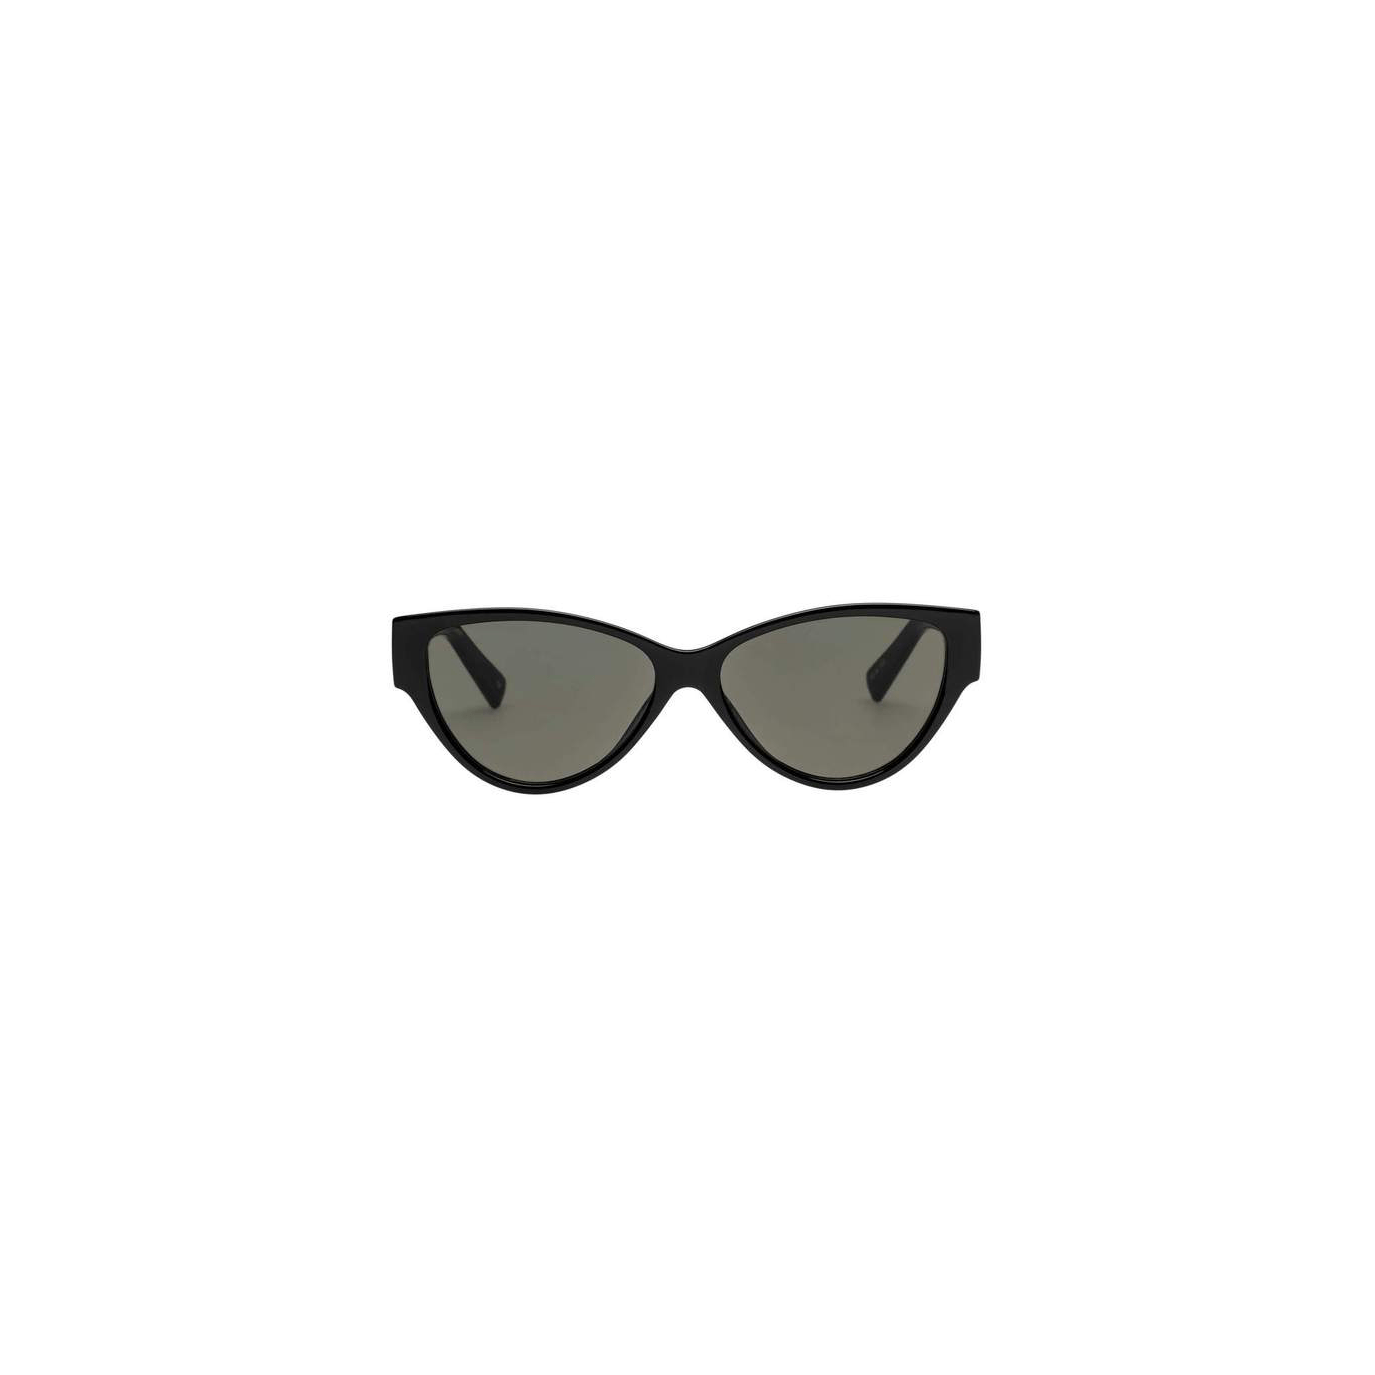 Eureka Sunglasses / Neighborhood Goods